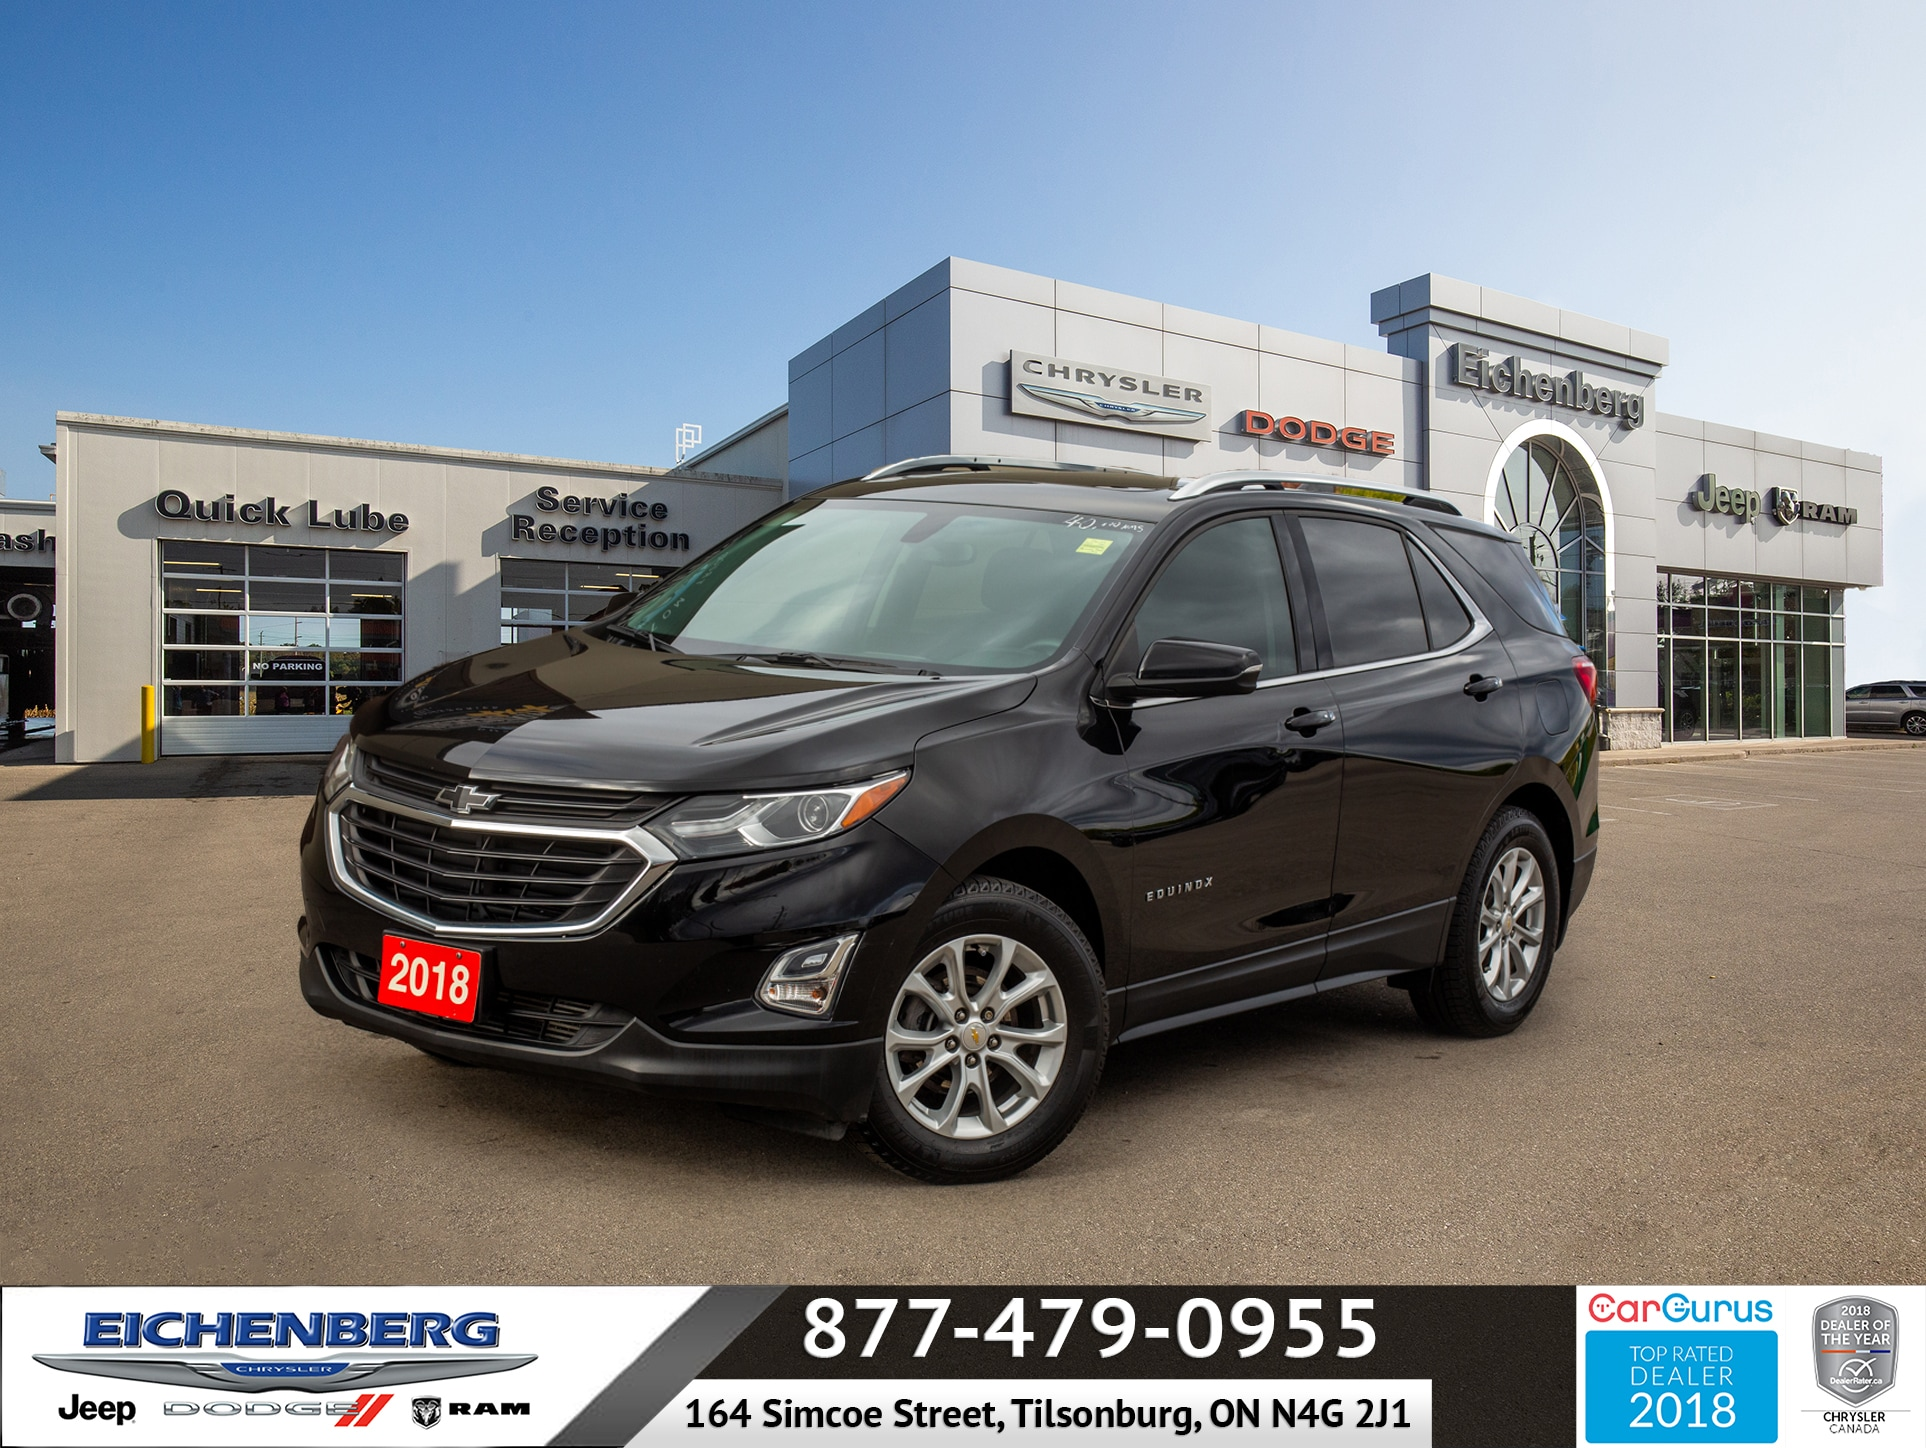 used 2018 Chevrolet Equinox car, priced at $20,999